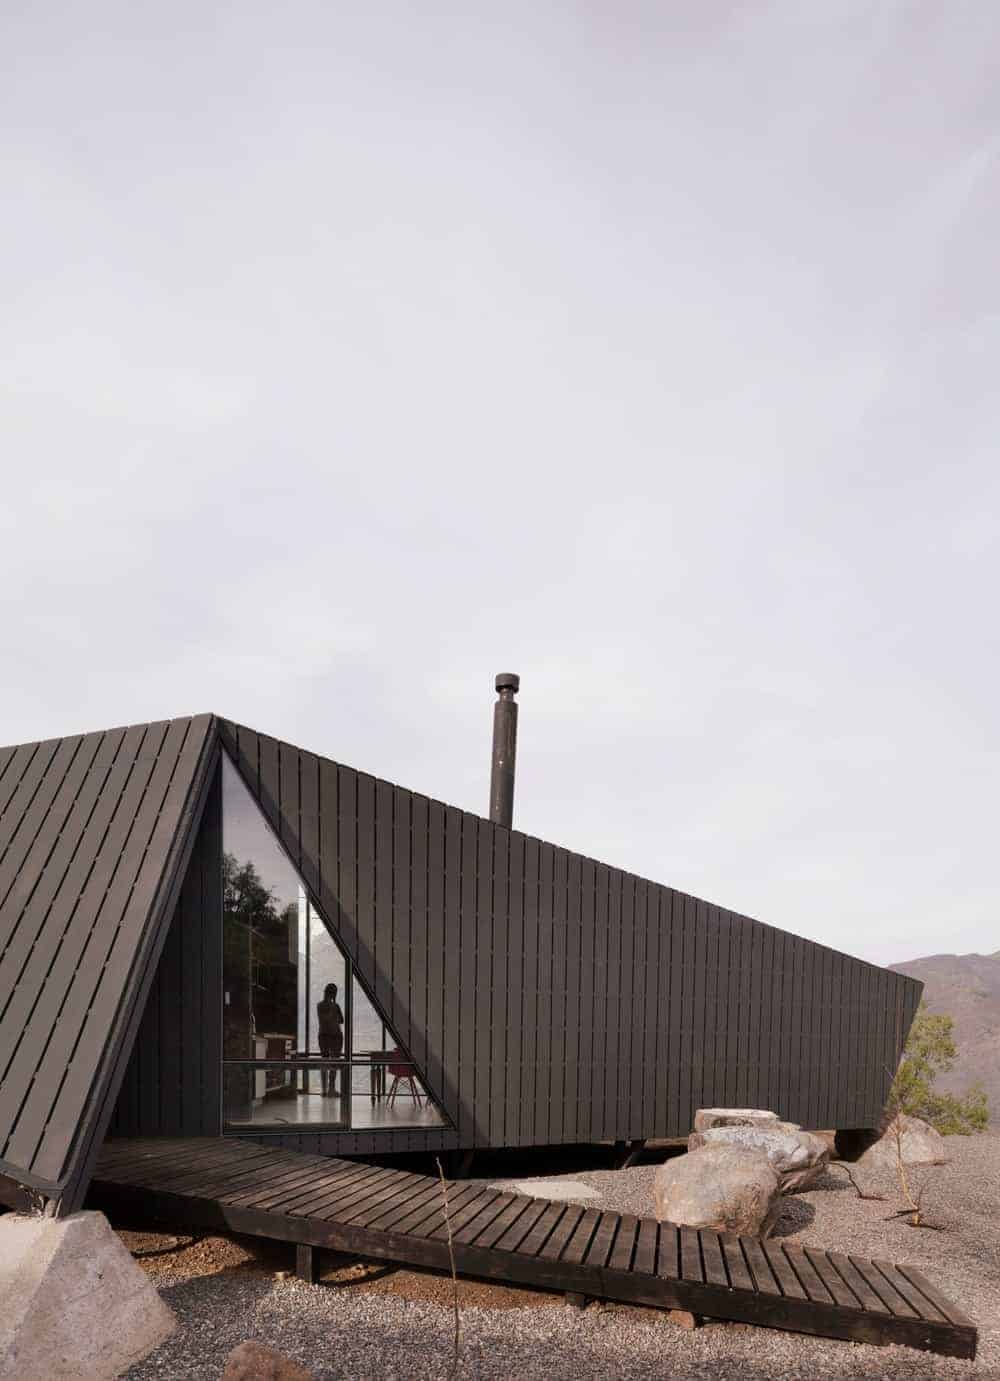 A wooden mountaineers refuge painted in black.